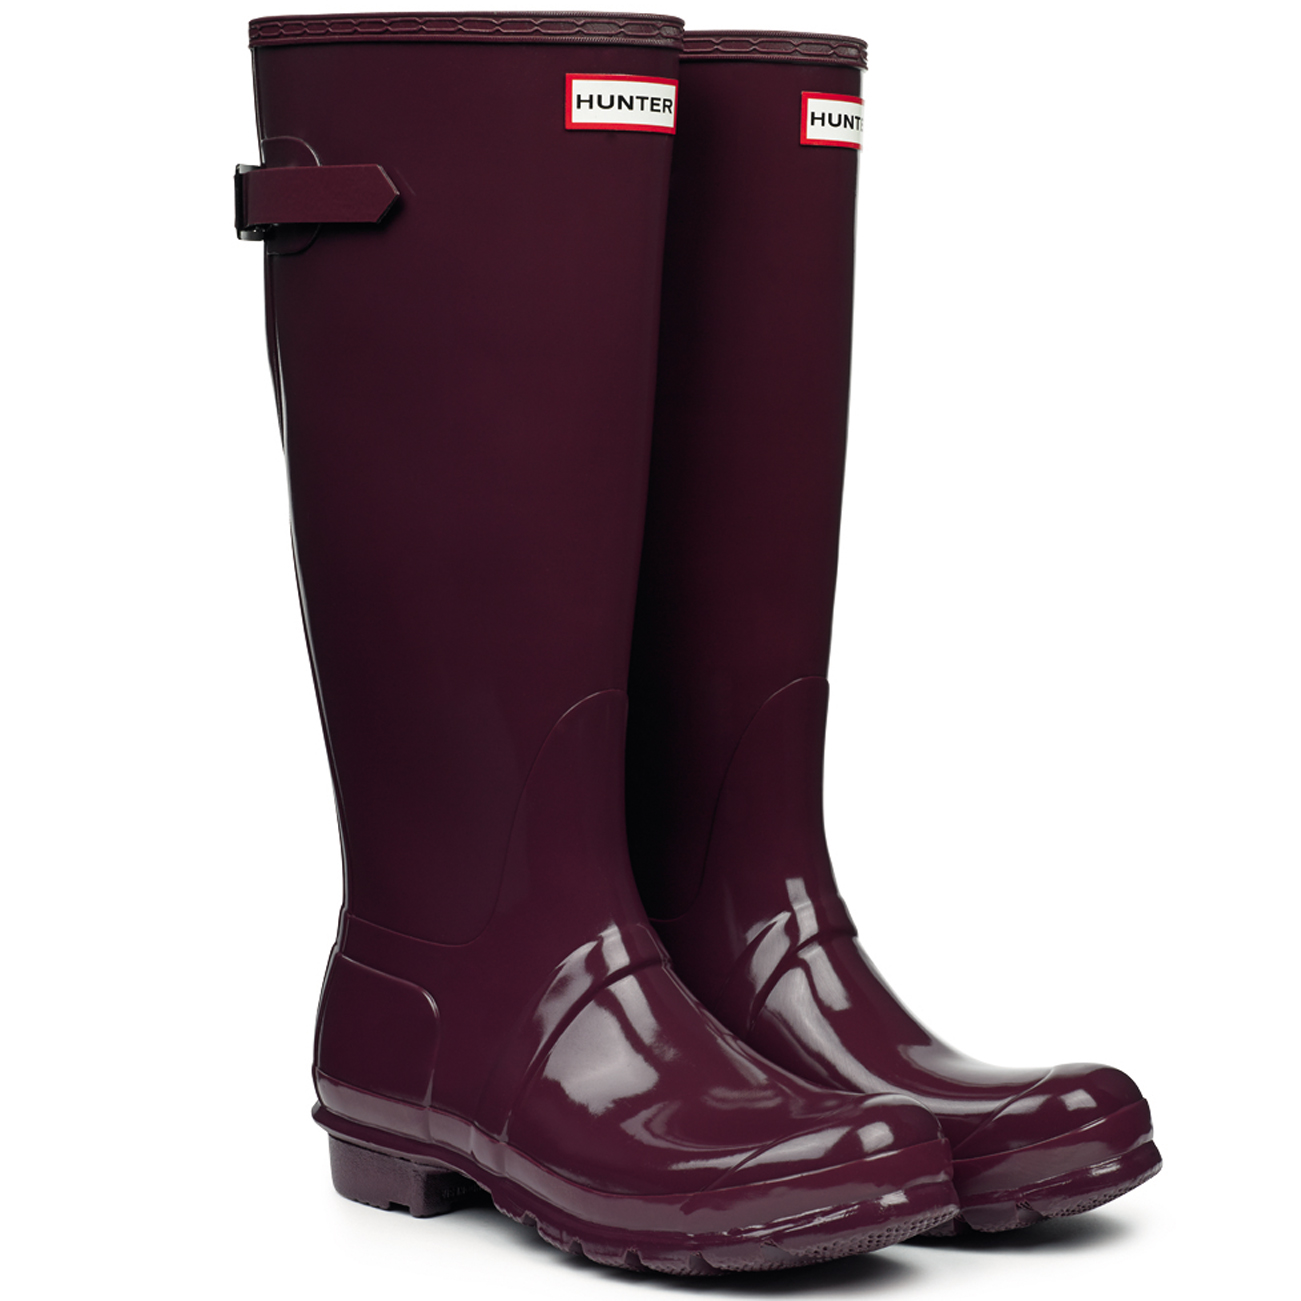 Damen Hunter Original Adjustable Back Gloss 35-42 Schnee Gummistiefel Stiefel EU 35-42 Gloss 360162